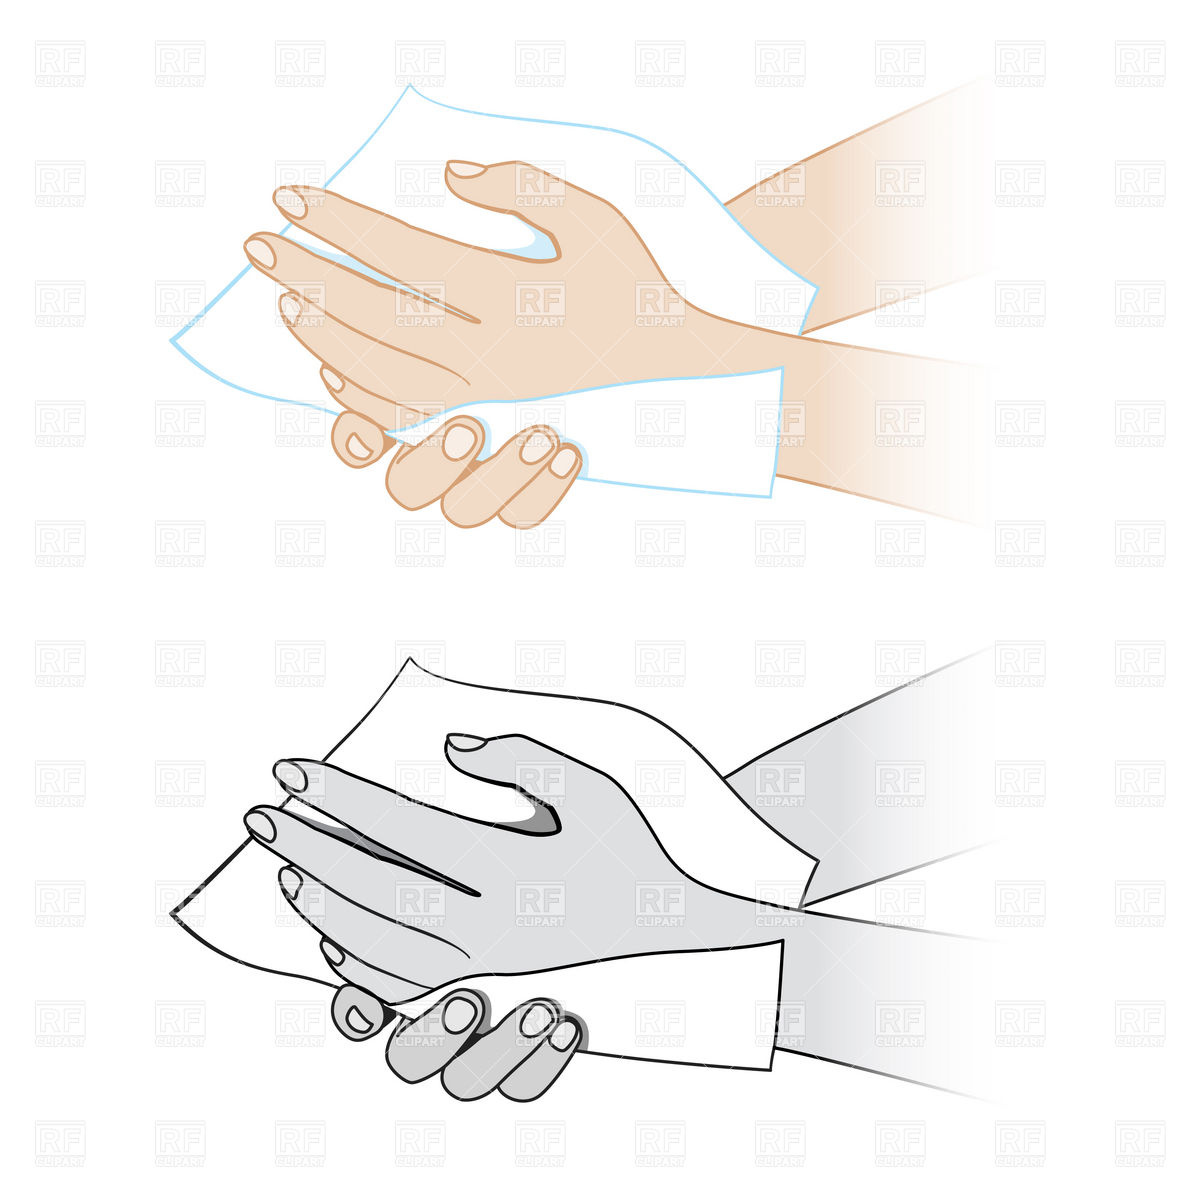 Dirty Hands Clipart Displaying 19 Images For Dirty Hands Clipart